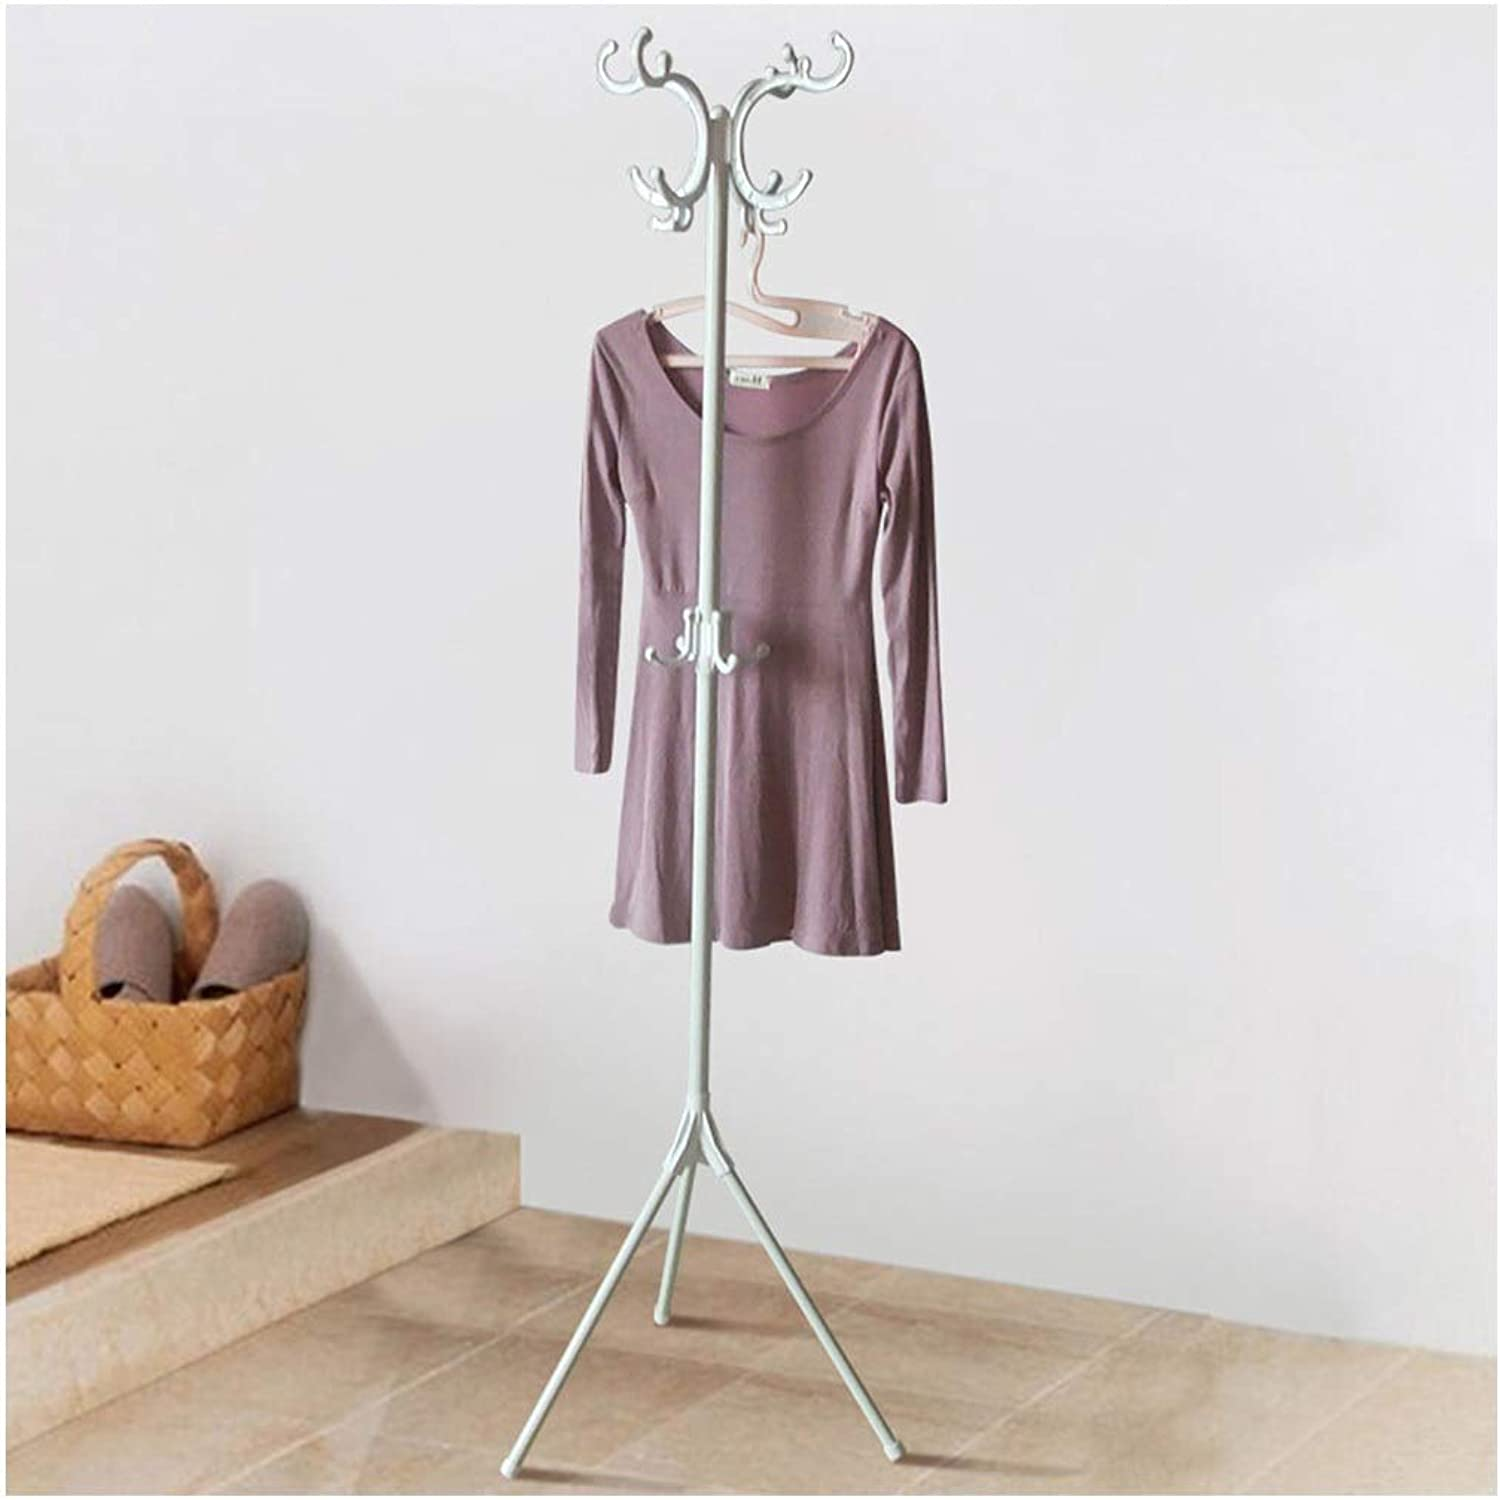 Standing Coat Racks Standing Coat Racks 171.5CM White Metal Hall Trees Coat Rack Stand 12Hooks Clothes Stand Tree Stylish Hat Coat Rail Stand Rack Clothes Jacket Storage Hanger Organiser -0223